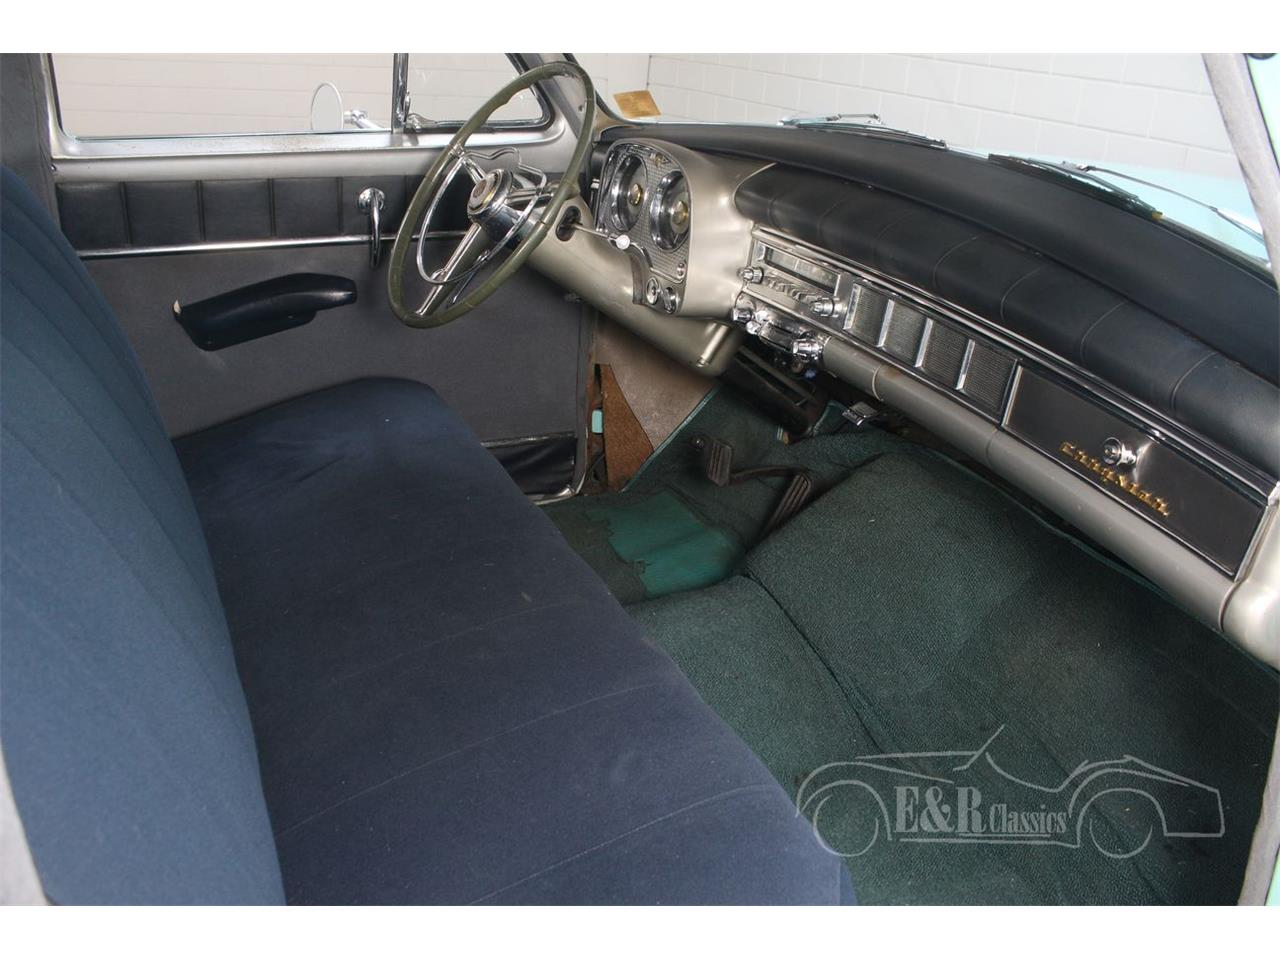 Large Picture of Classic '54 Chrysler Windsor located in Waalwijk noord brabant - $19,000.00 - QJZL